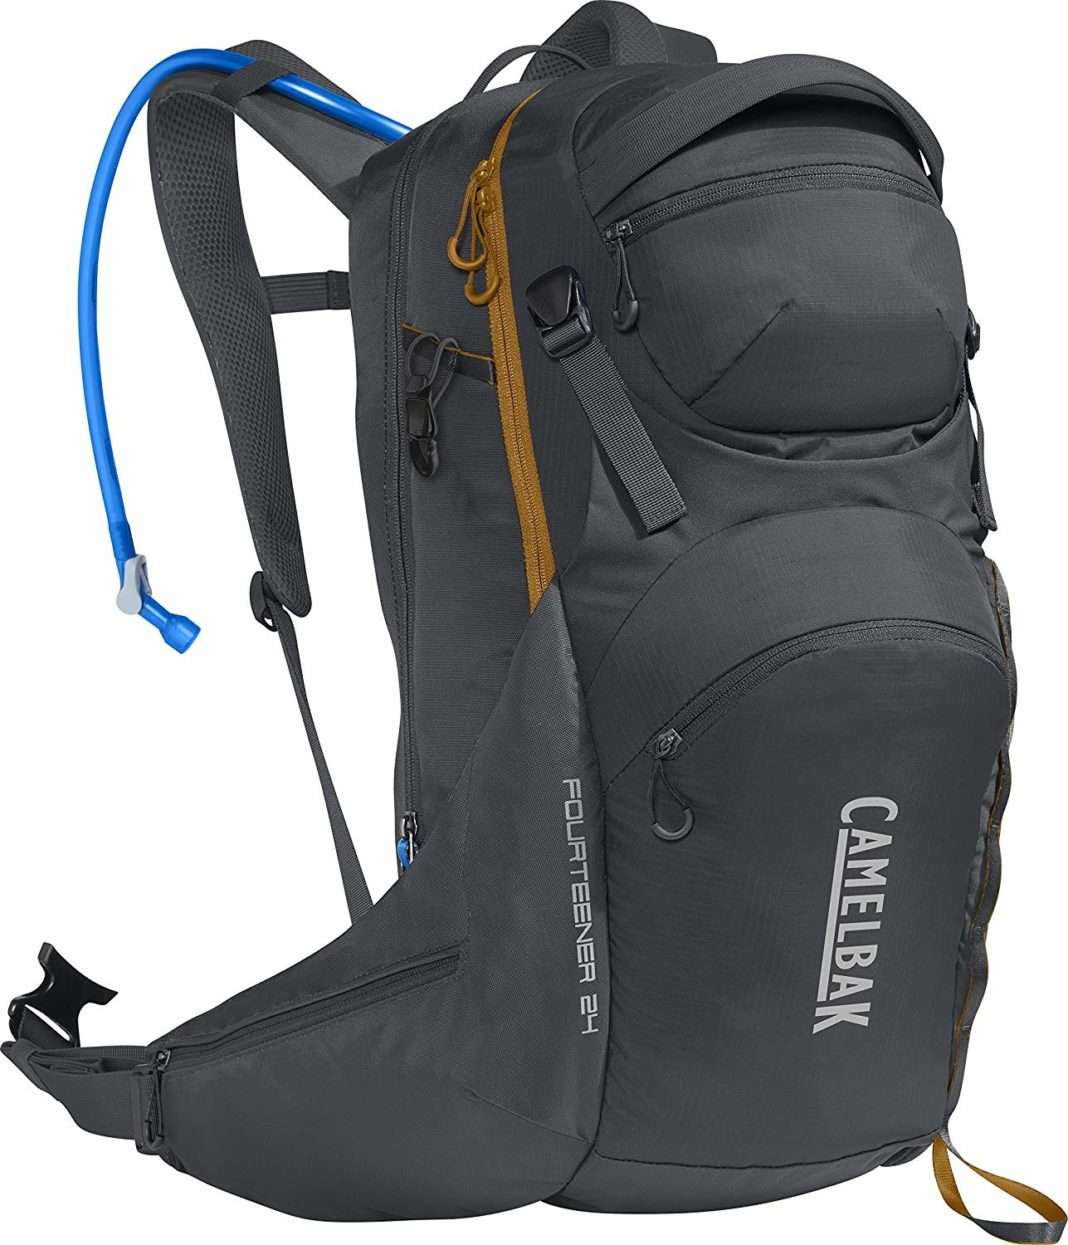 CamelBak Fourteener 24 Hydration Pack - Curved Back